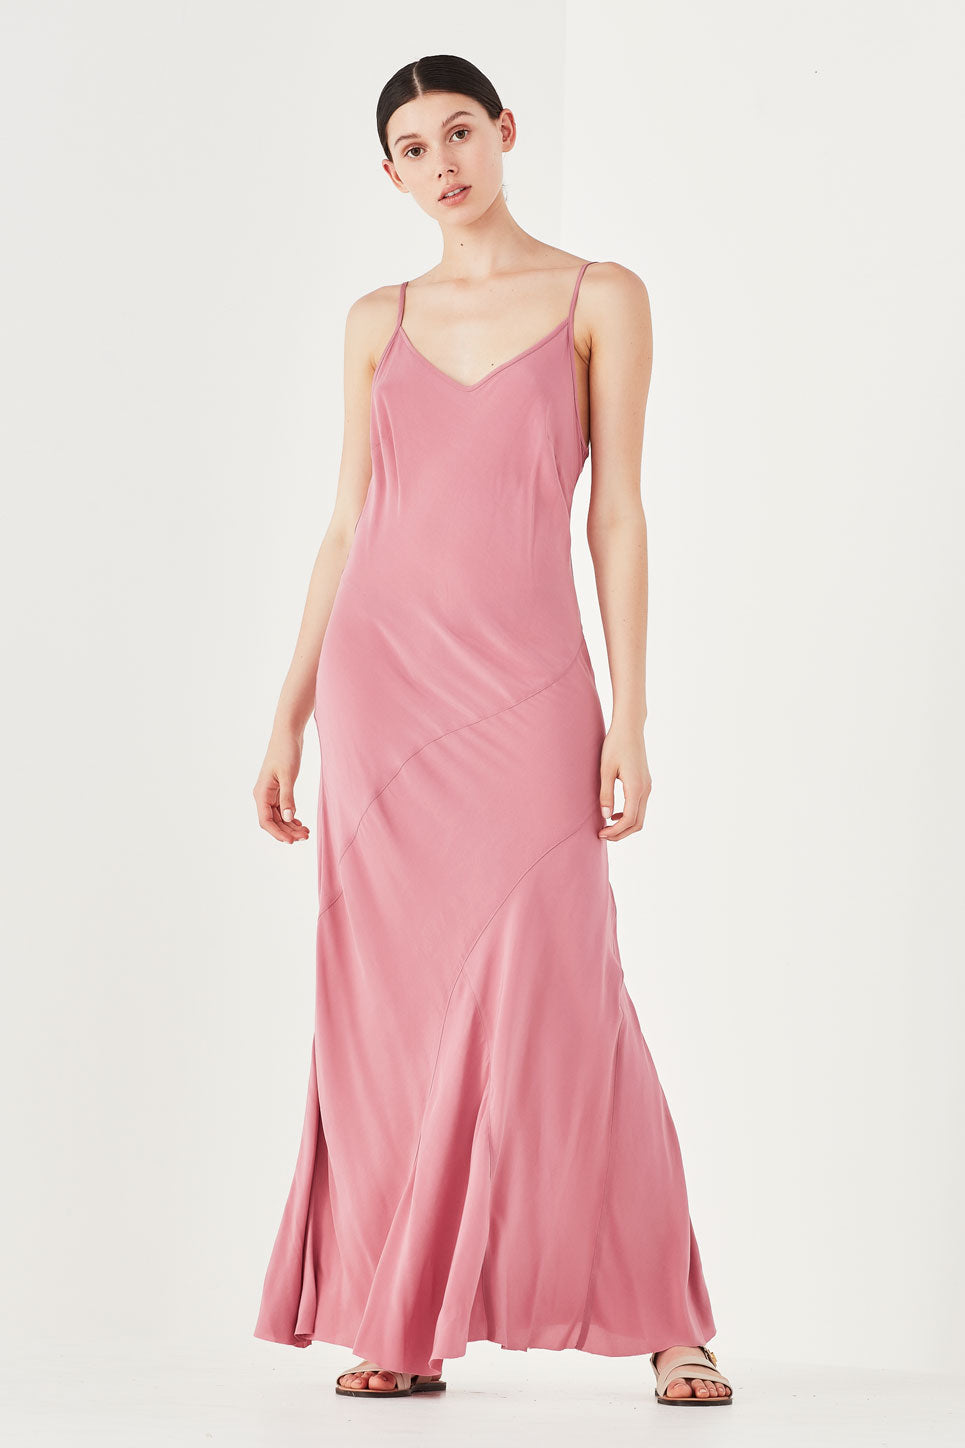 ONE-OFF | The Nymph Dress in Peony